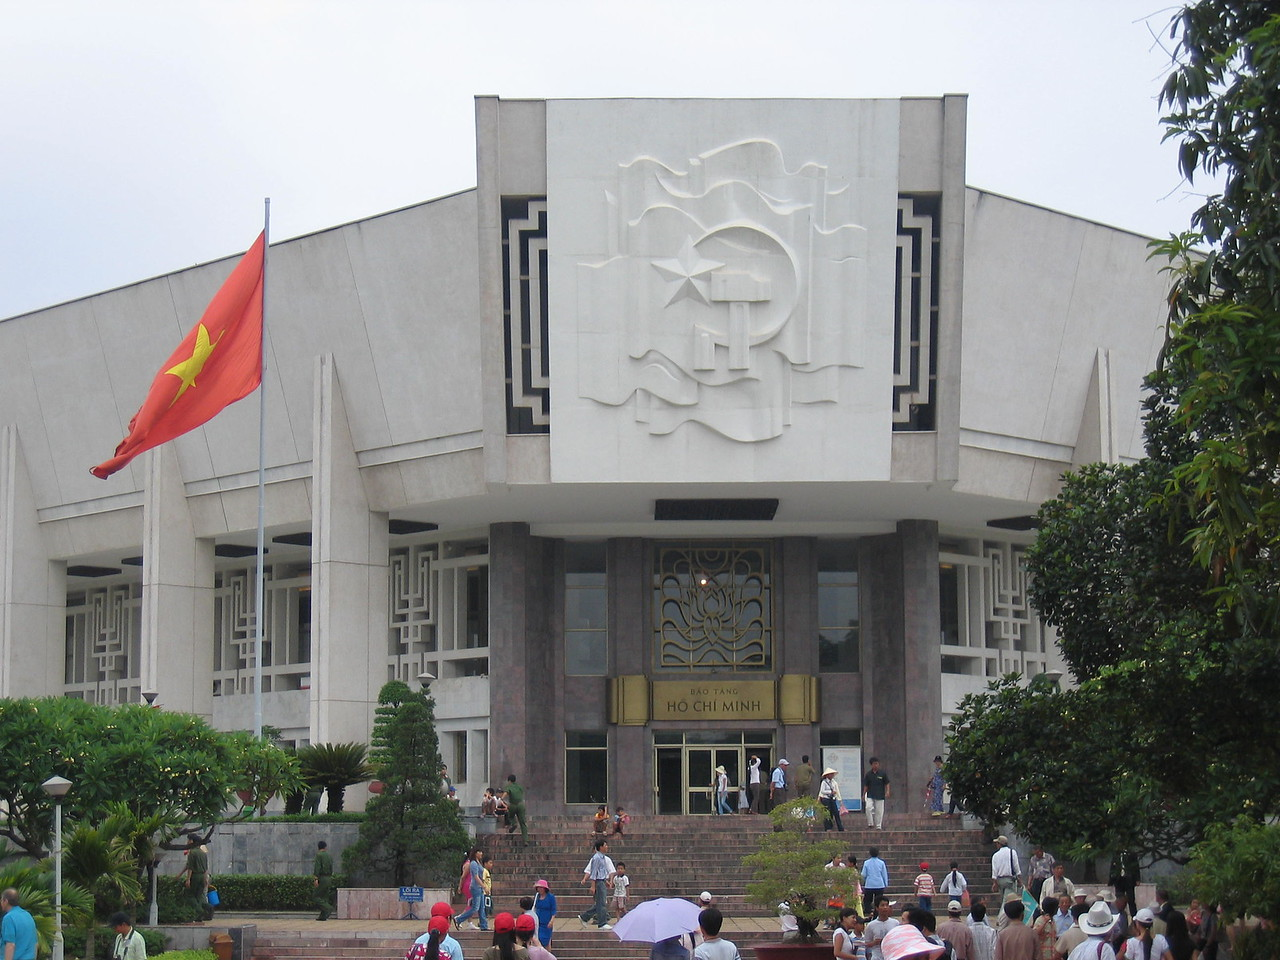 The Ho Chi Minh Museum in Ha Noi.